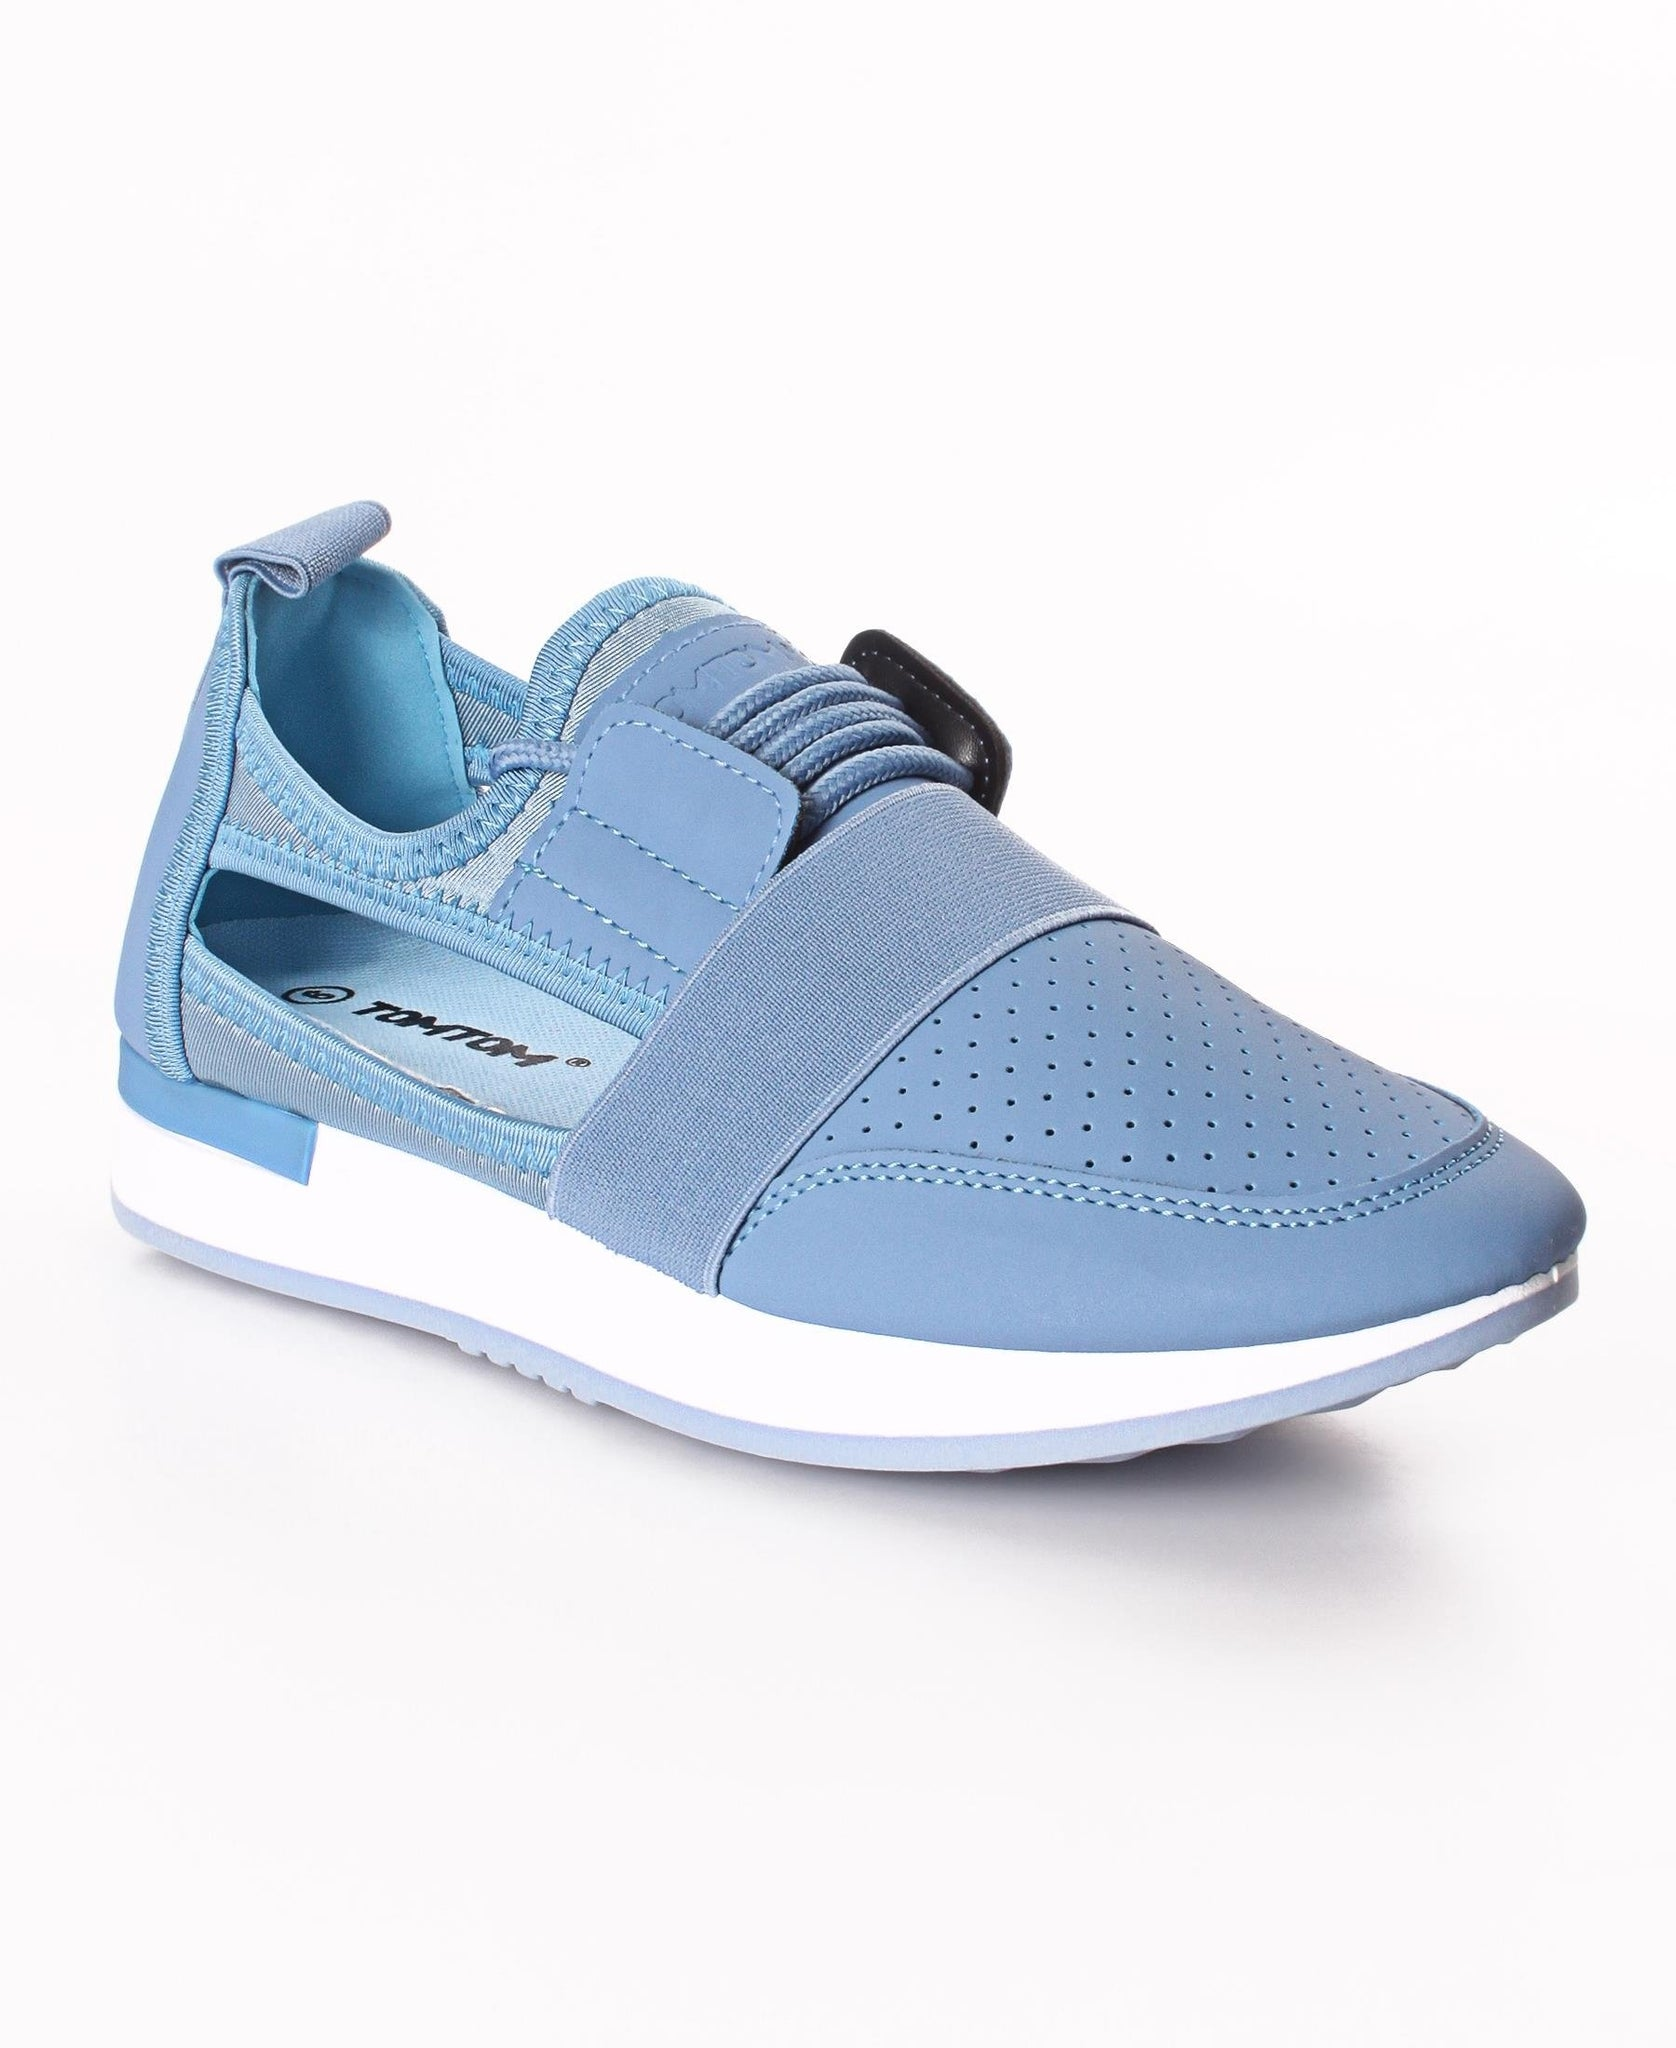 Ladies' Storm Pastel Sneakers - Blue